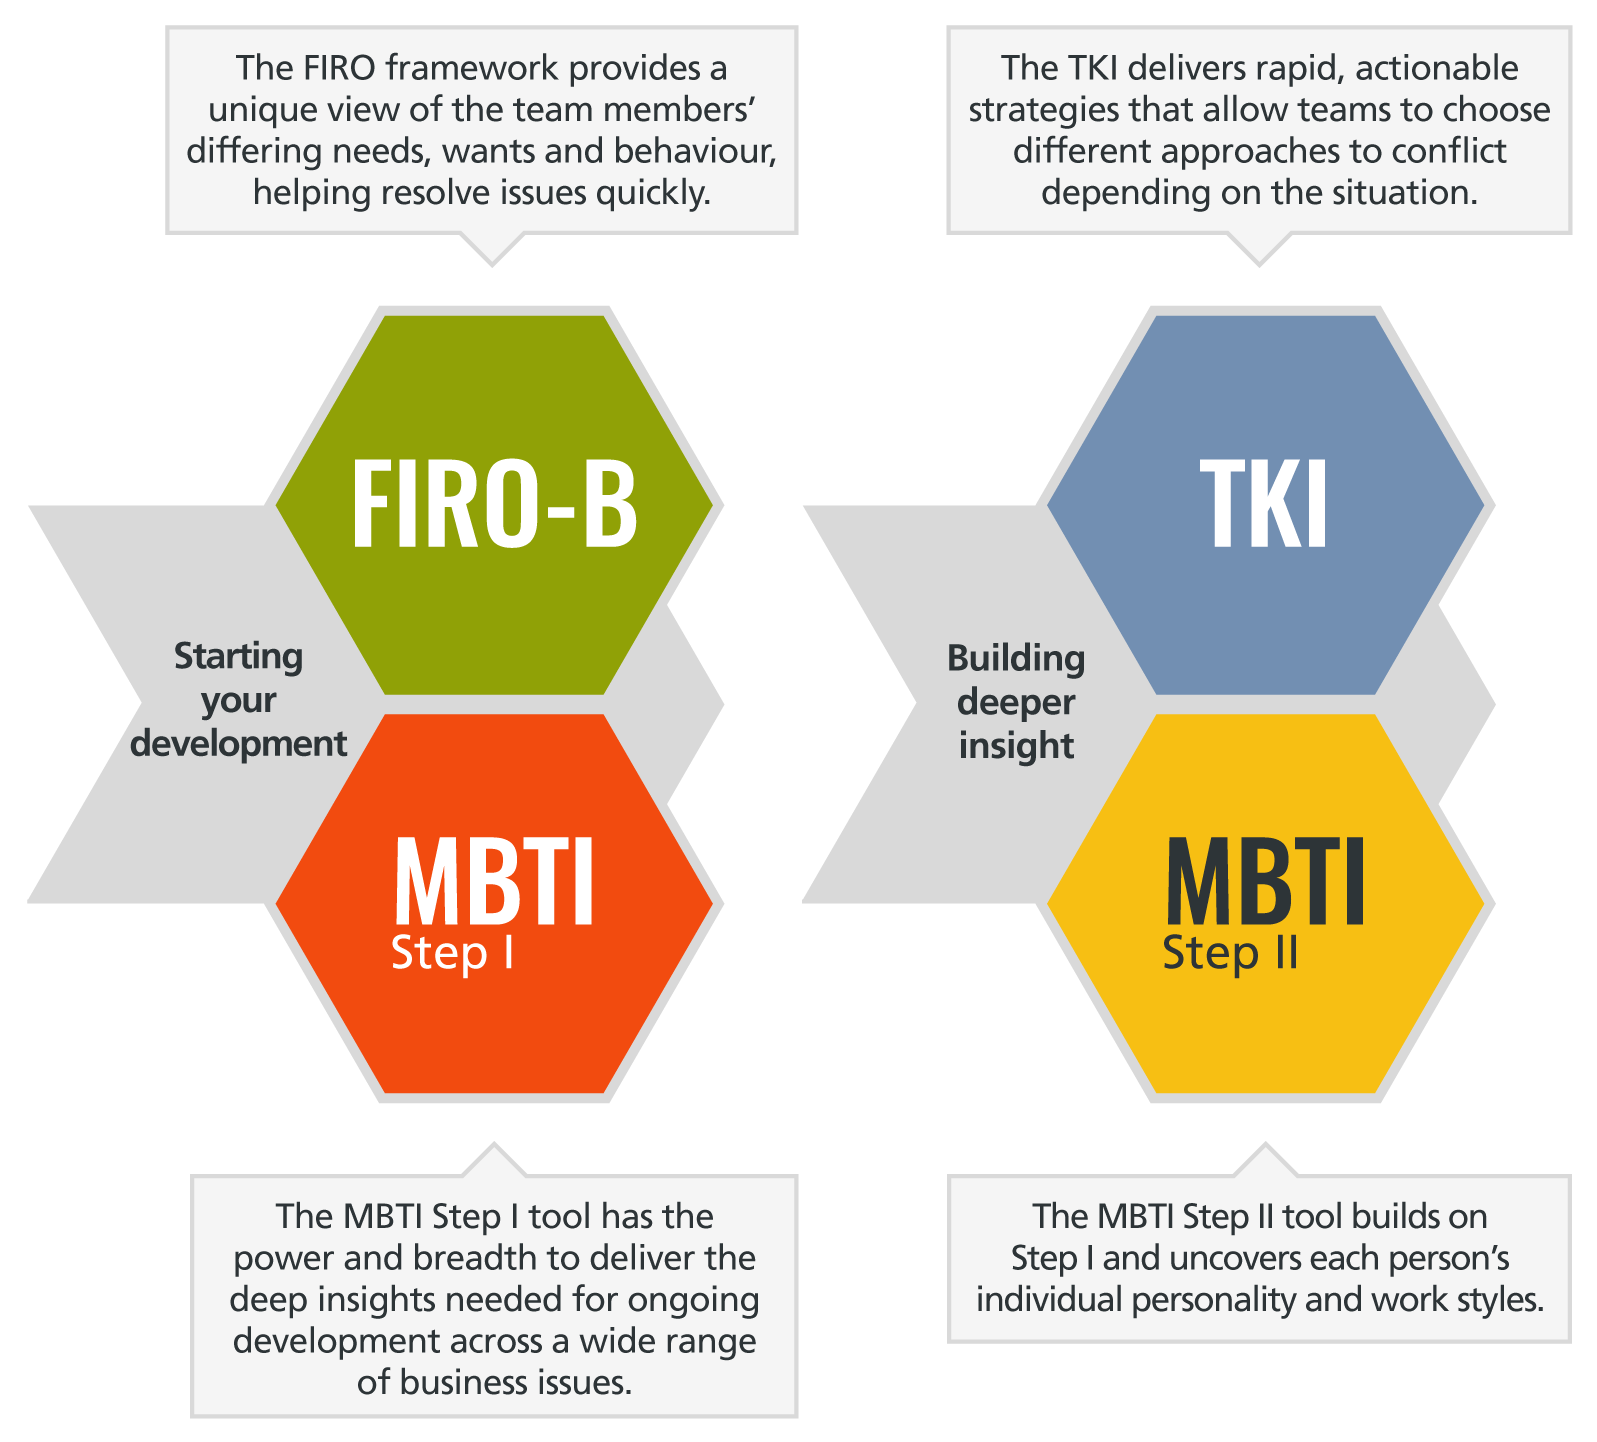 the mbti step i team report provides the ideal starting point for teams that want to get to know each other to improve their productivity